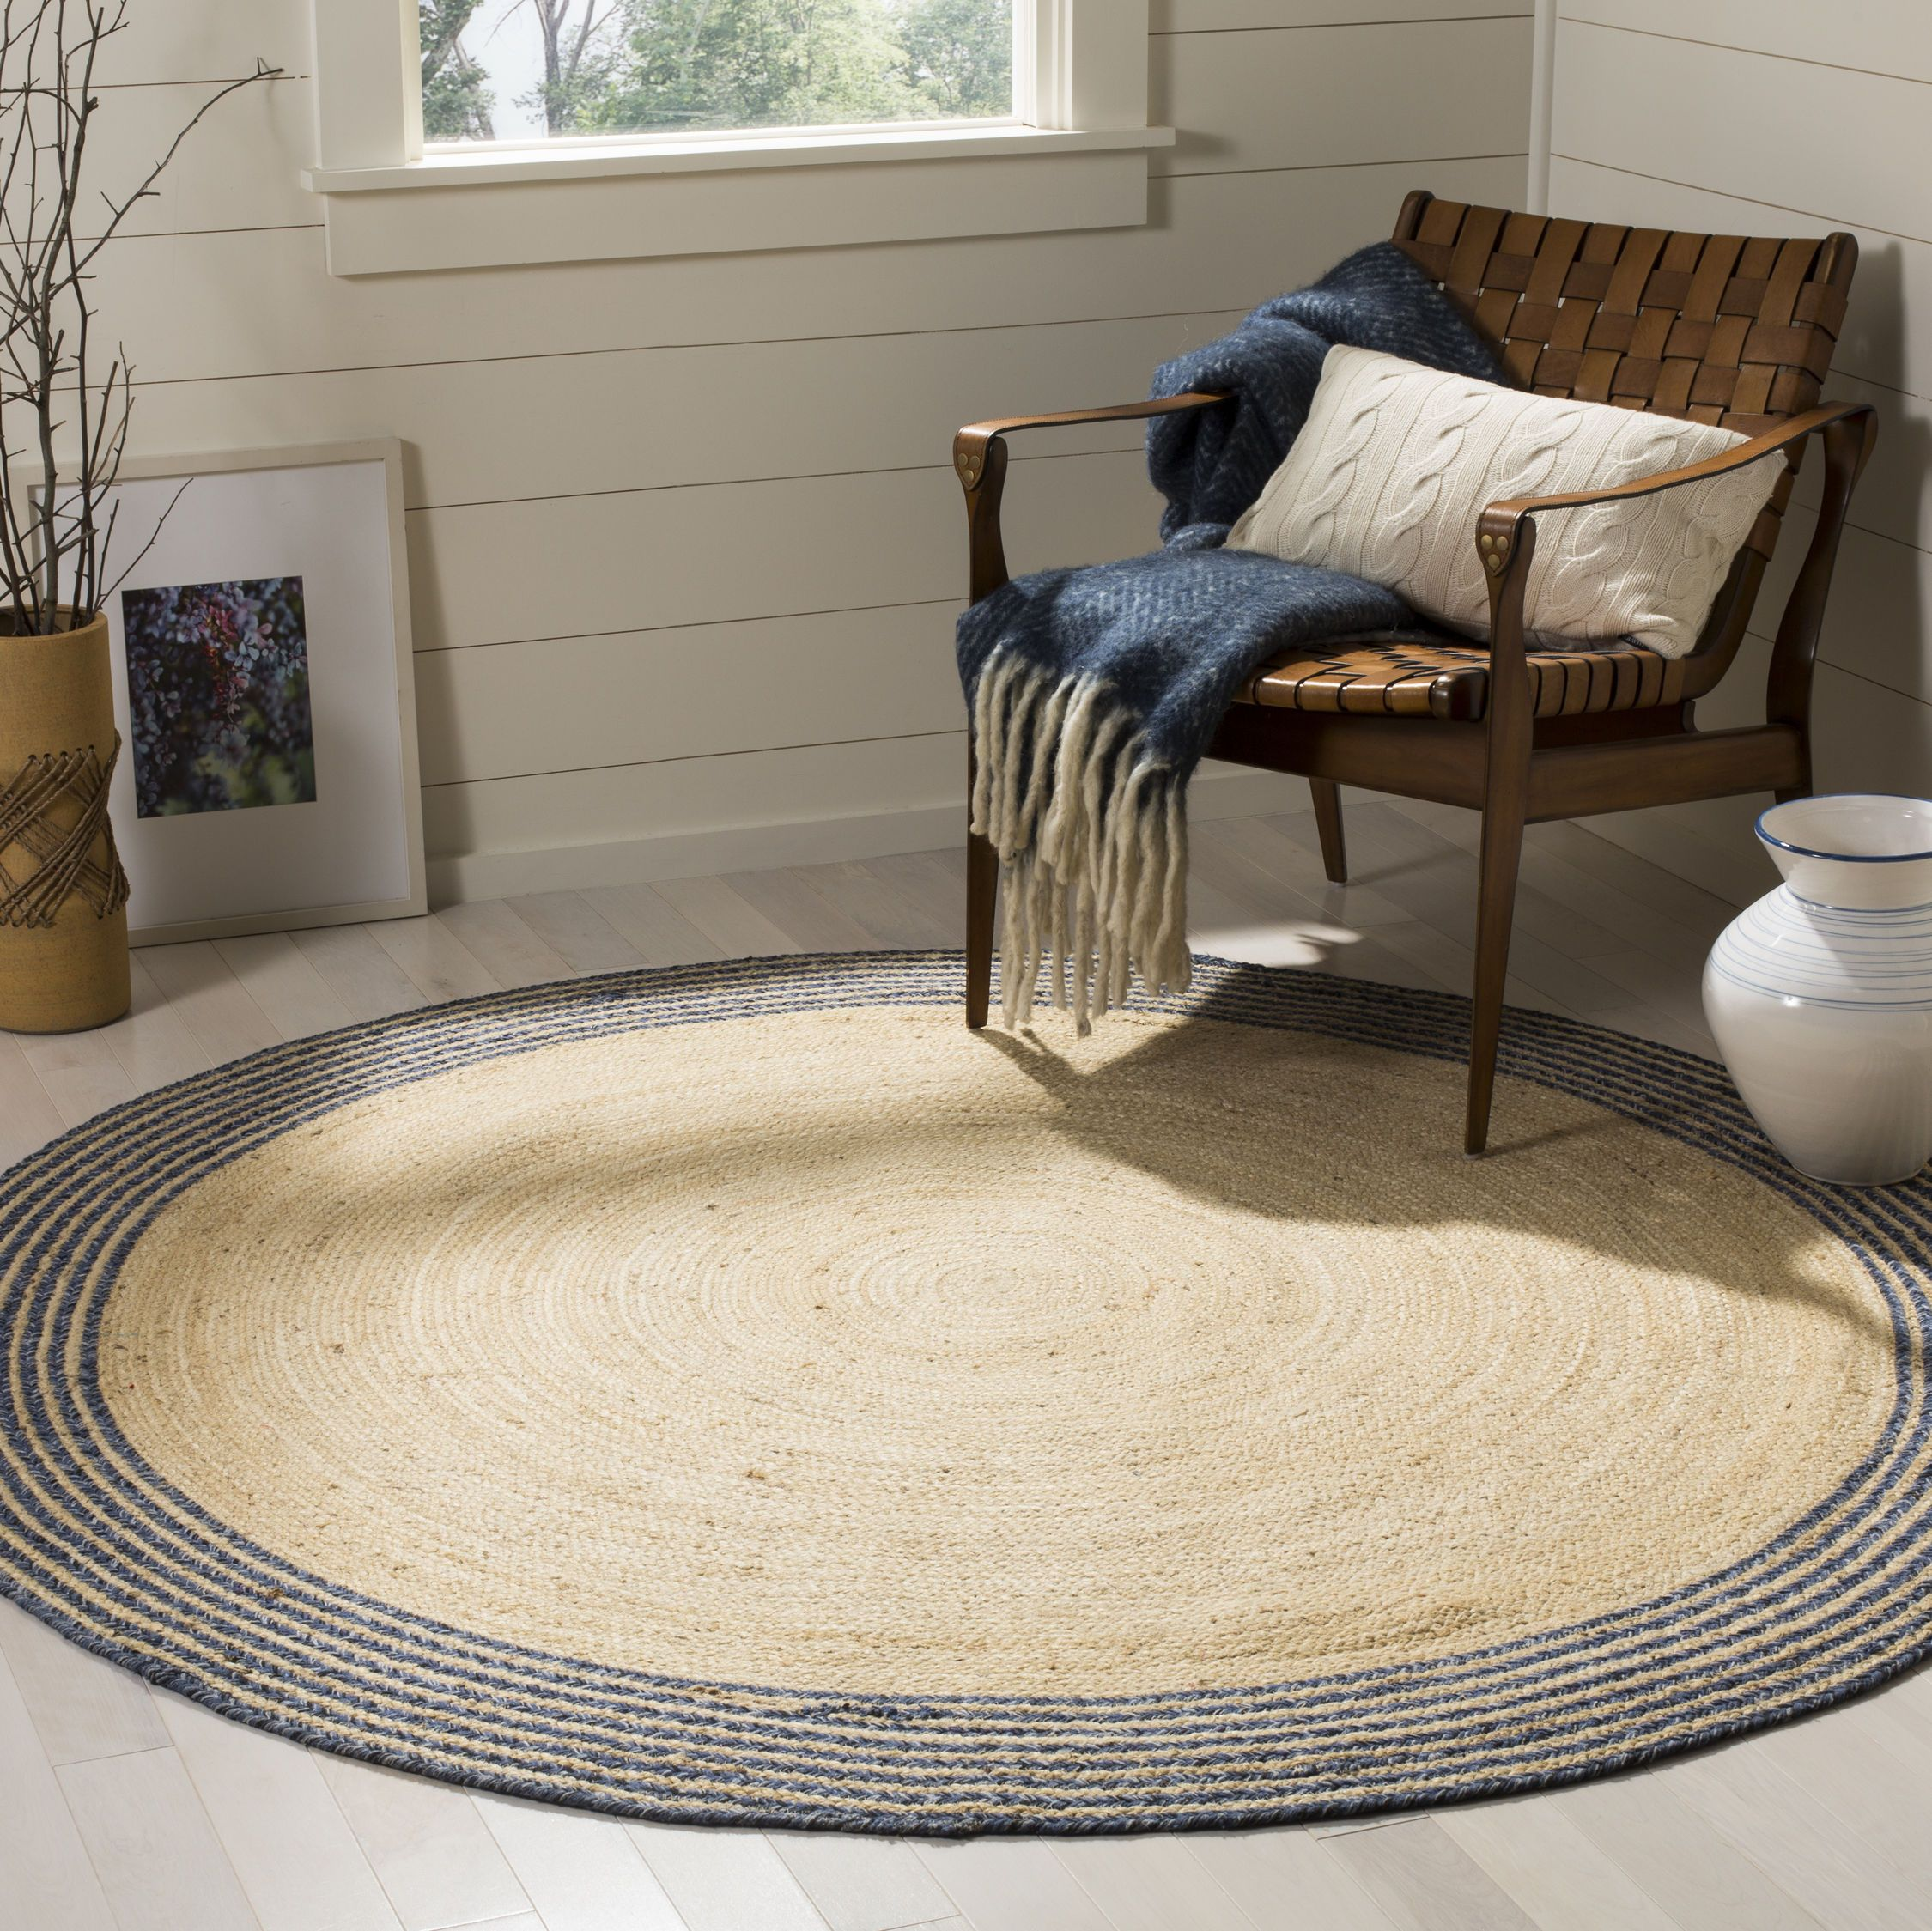 Modern Farmhouse Round Jute Rug Handwoven Of Jute And Finished Off With A Border Of Concentric Circles Thi Round Area Rugs Braided Area Rugs Jute Area Rugs